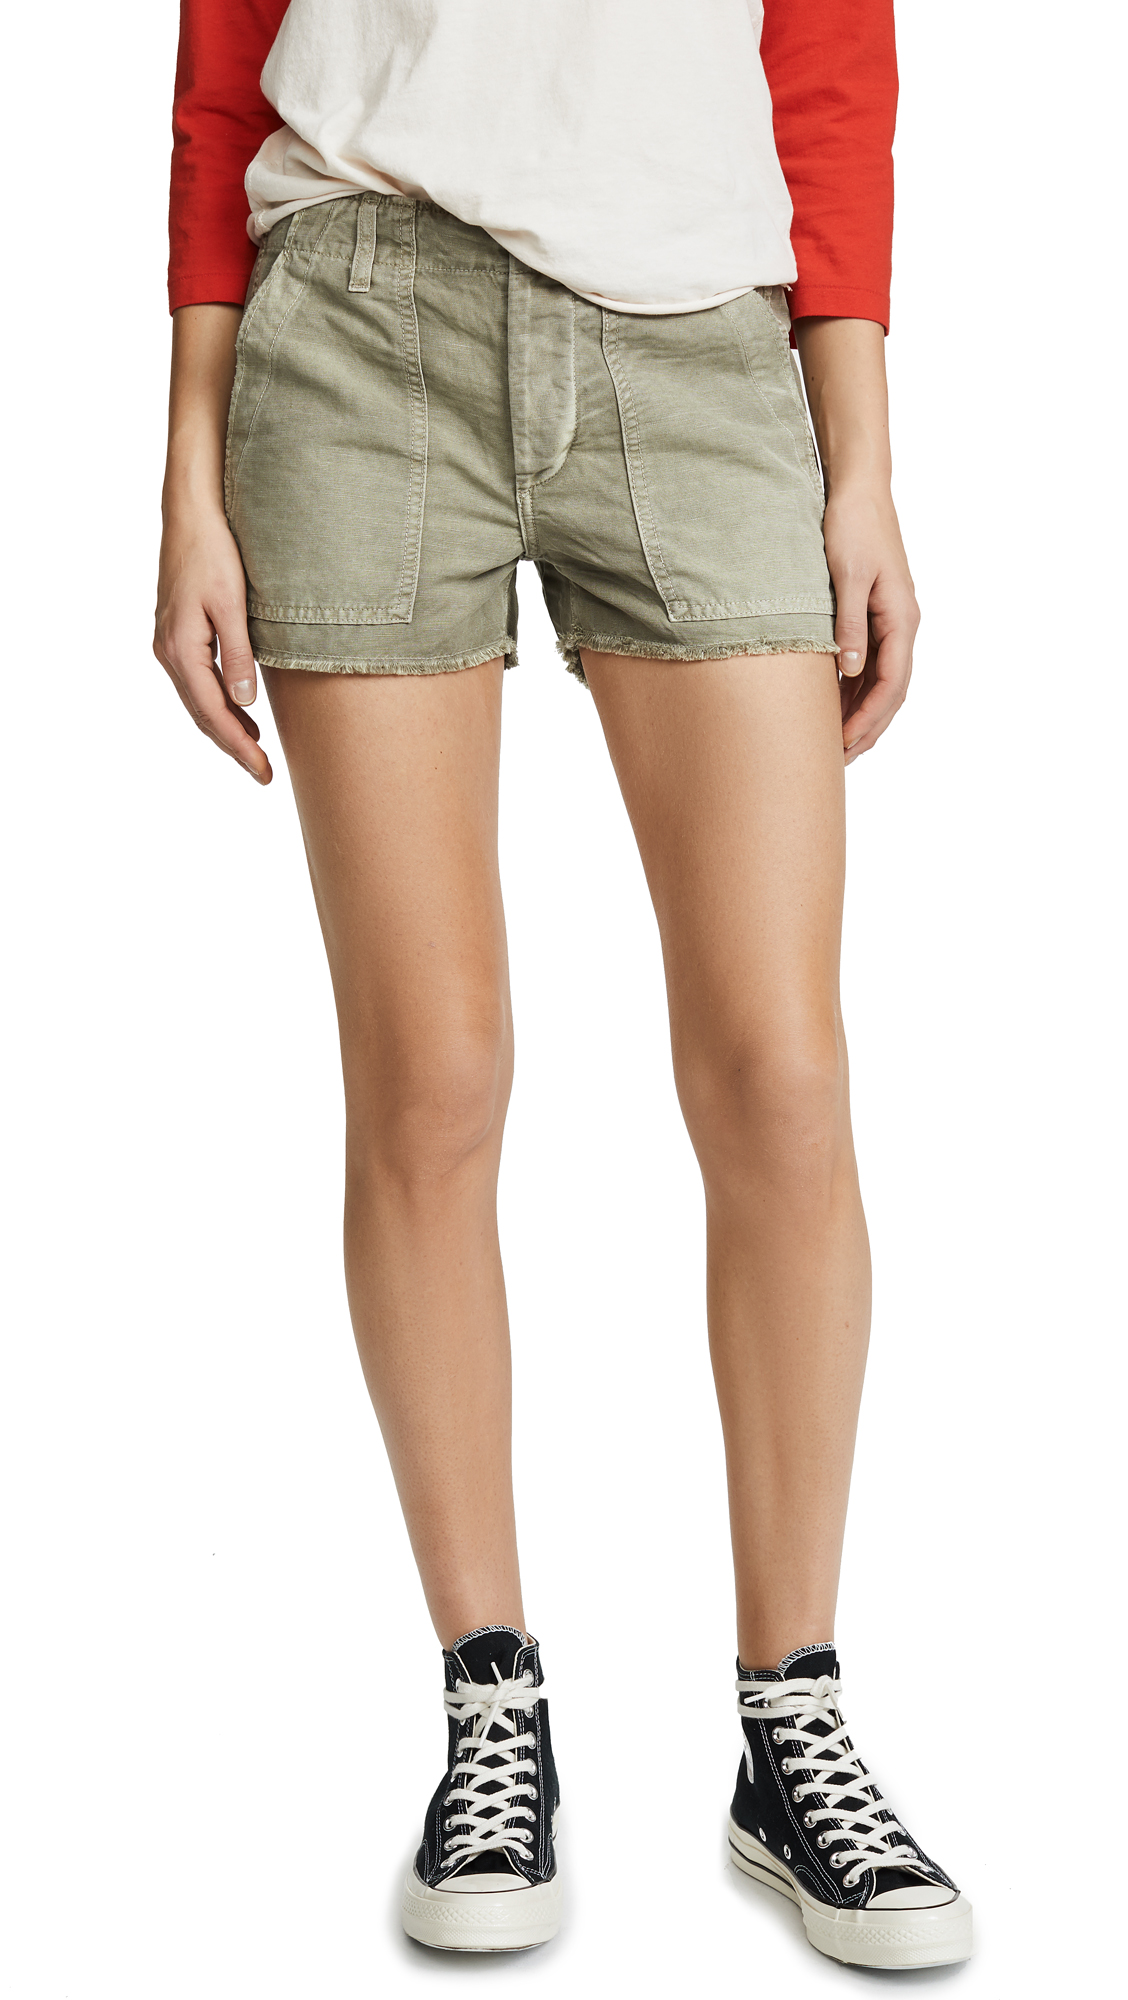 AMO Army Shorts In Grey Green